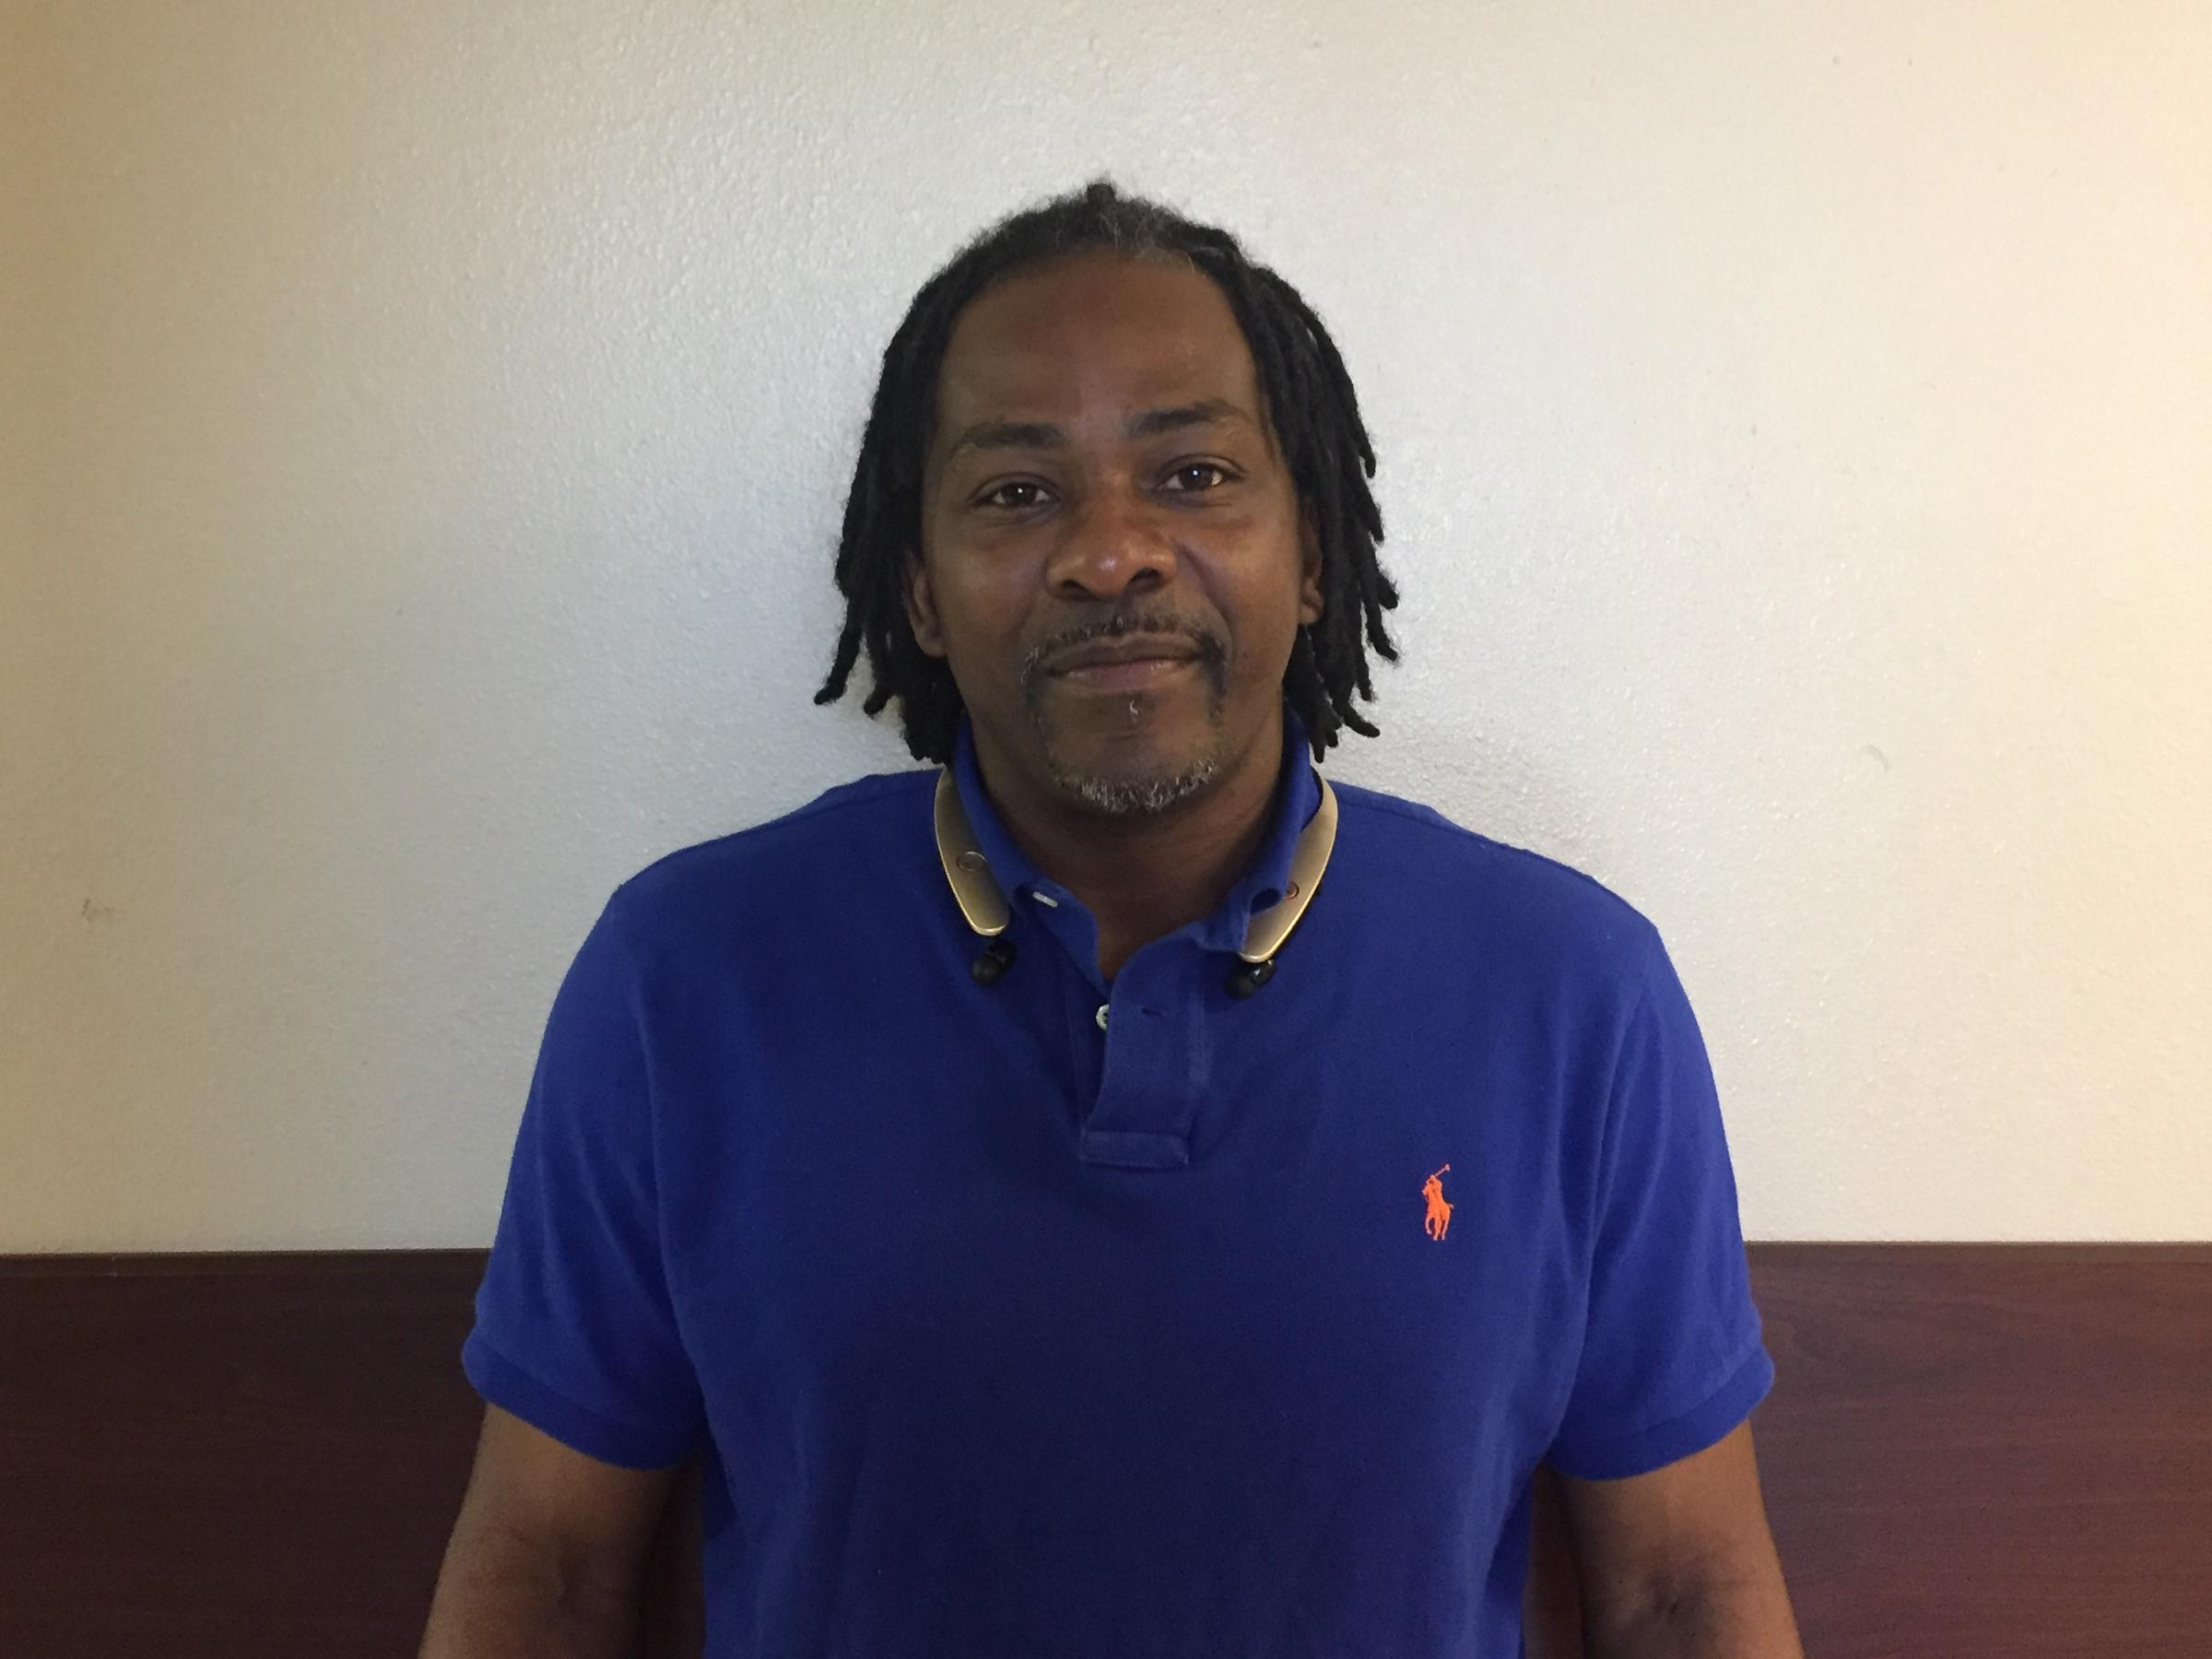 Derrick Golette Is A Single Father And Lives In Transitional Housing At  Family Gateway In Dallas.